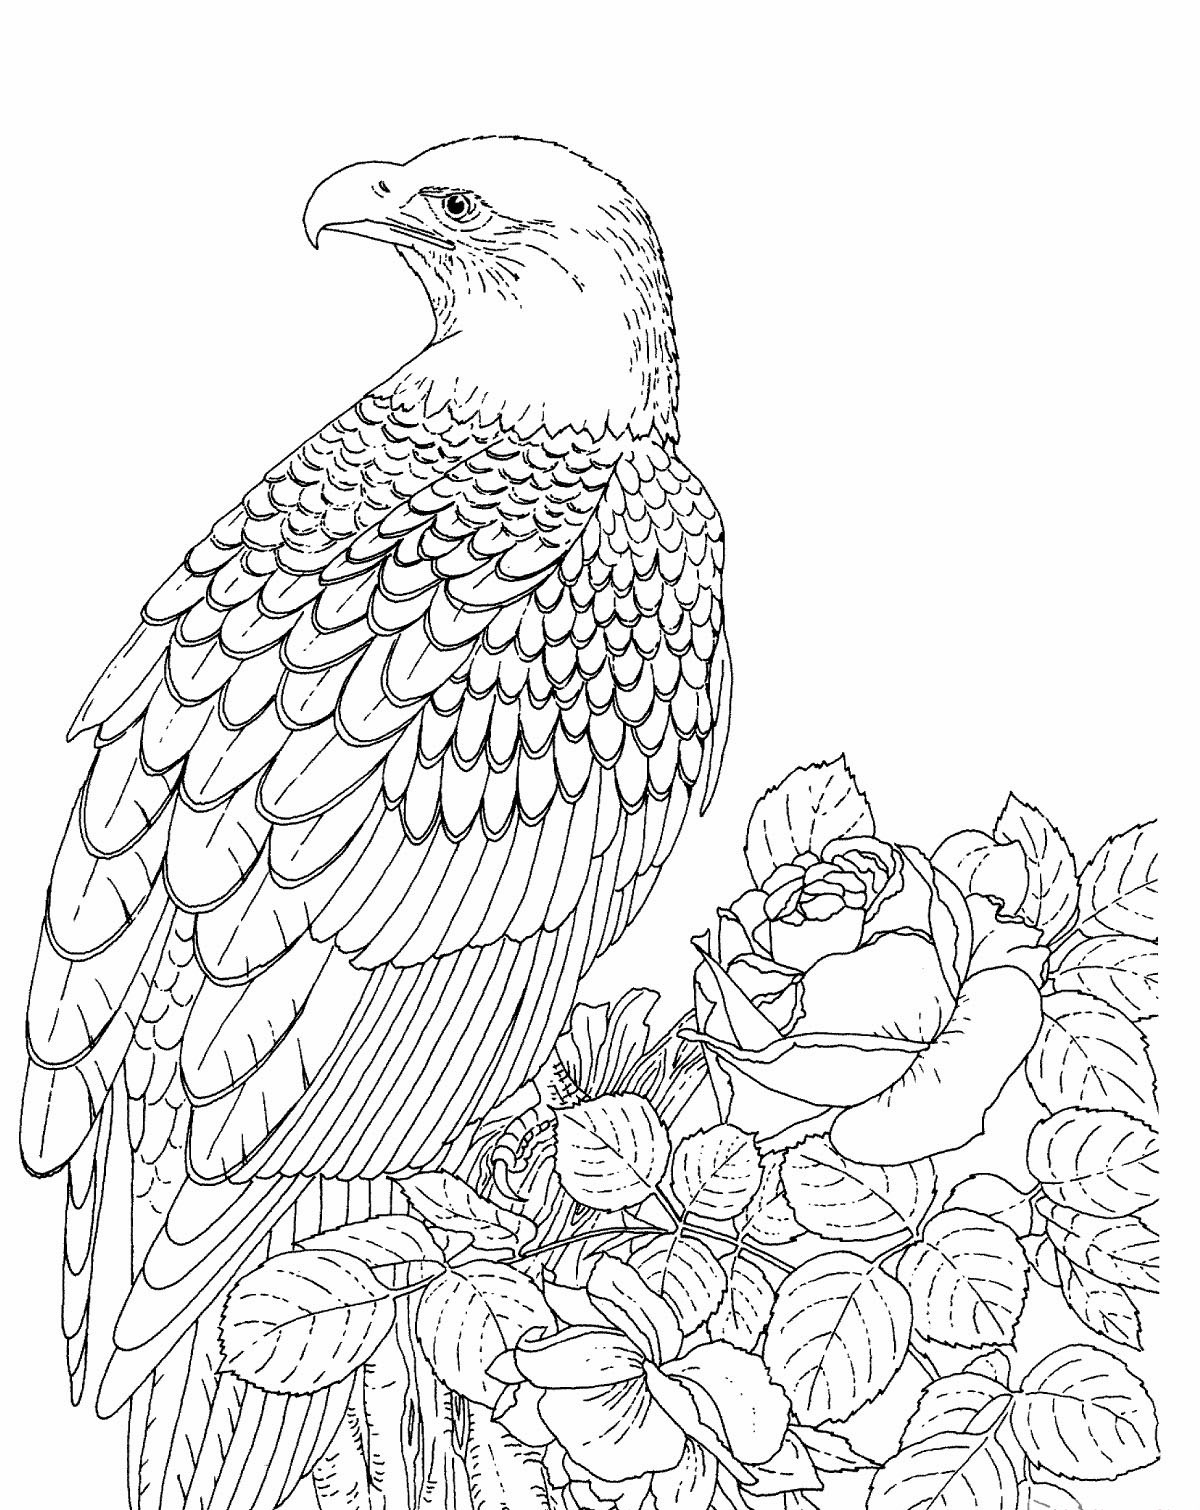 bald eagle coloring pages free printable - American Bald Eagle Coloring Page